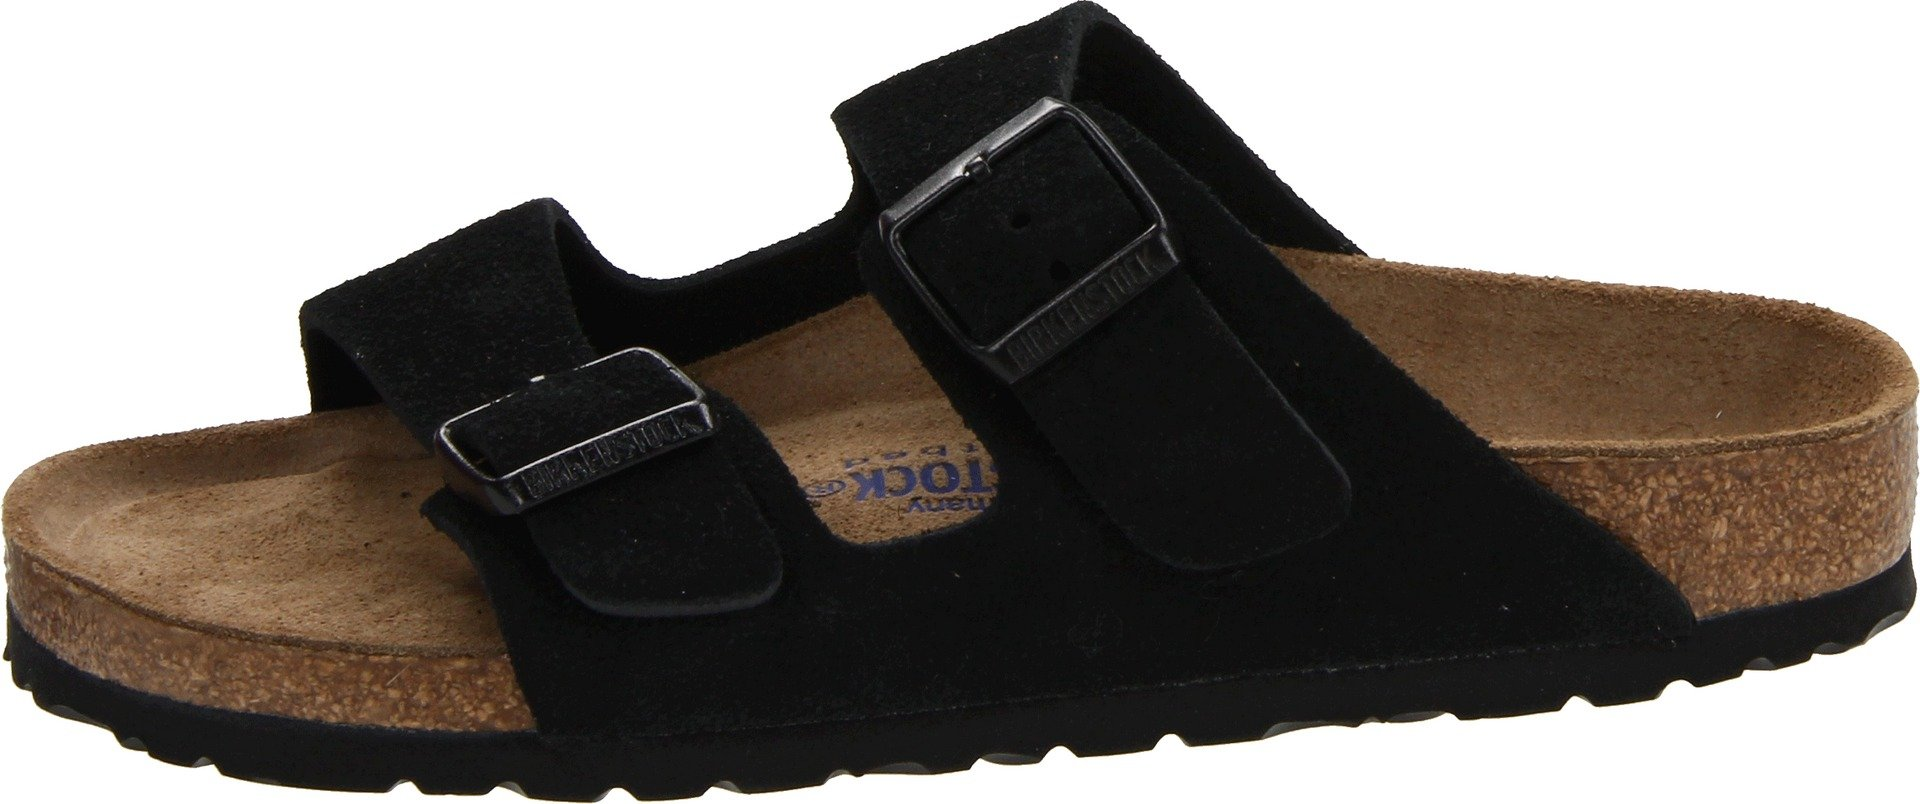 da25c4596521 Birkenstock Unisex Arizona Black Suede Sandals - 43 M EU 10-10.5 B(M) US  Men - N951323 R951321   Mules   Clogs   Clothing